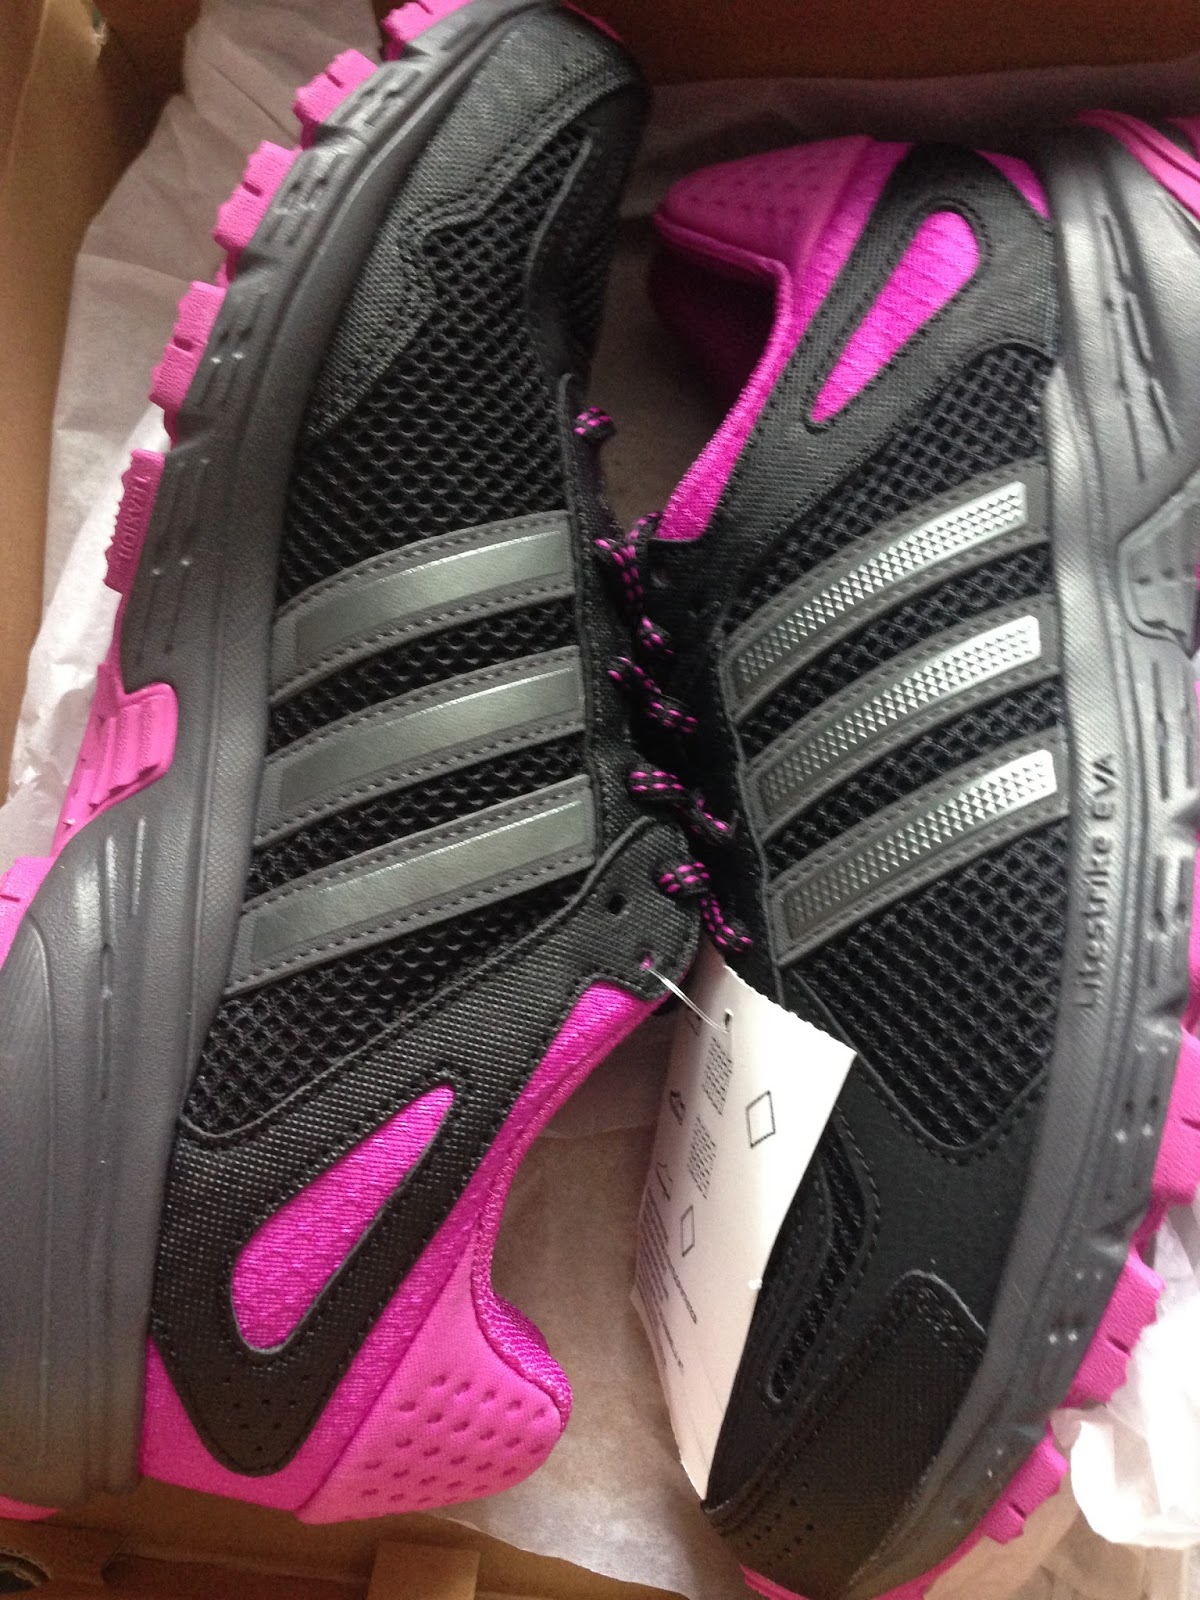 New addidas trainers in black and pink